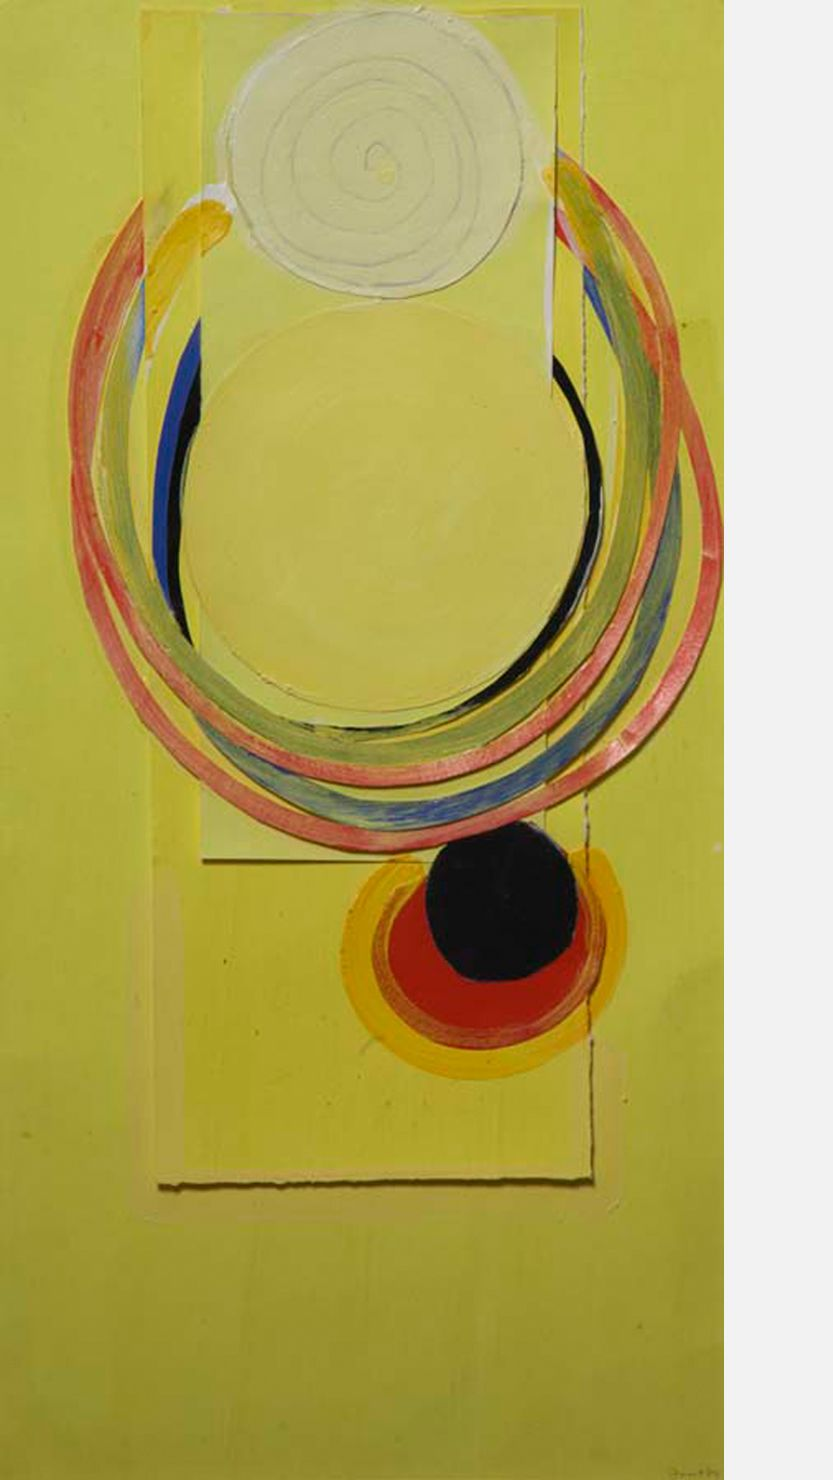 Yellow Suspended Form, 1979 by Terry Frost